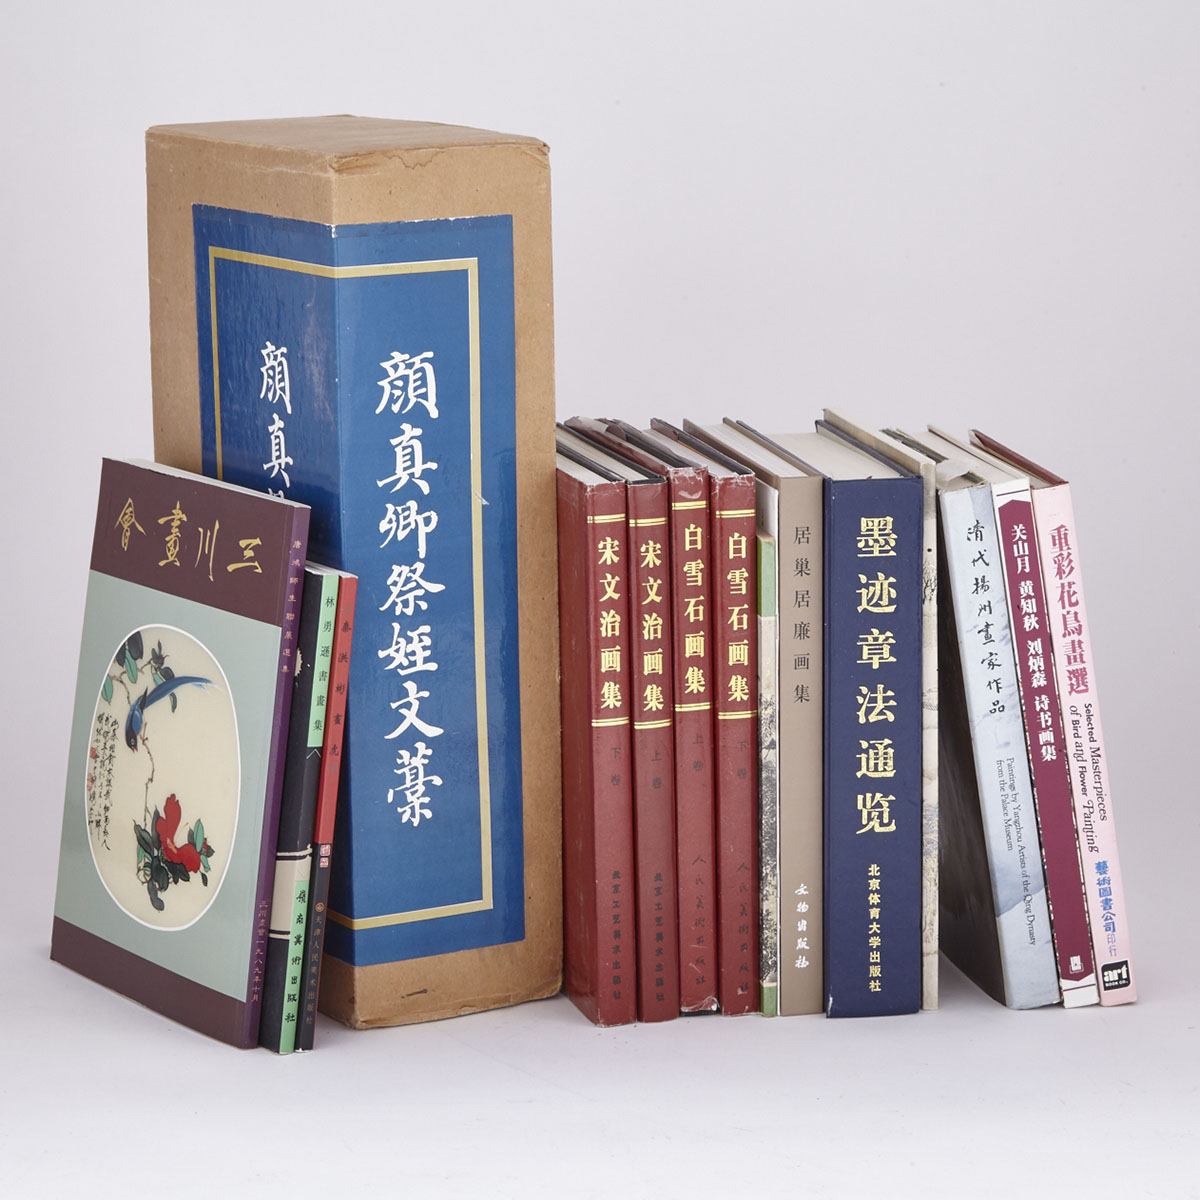 16 Volumes on Chinese Painting Masters